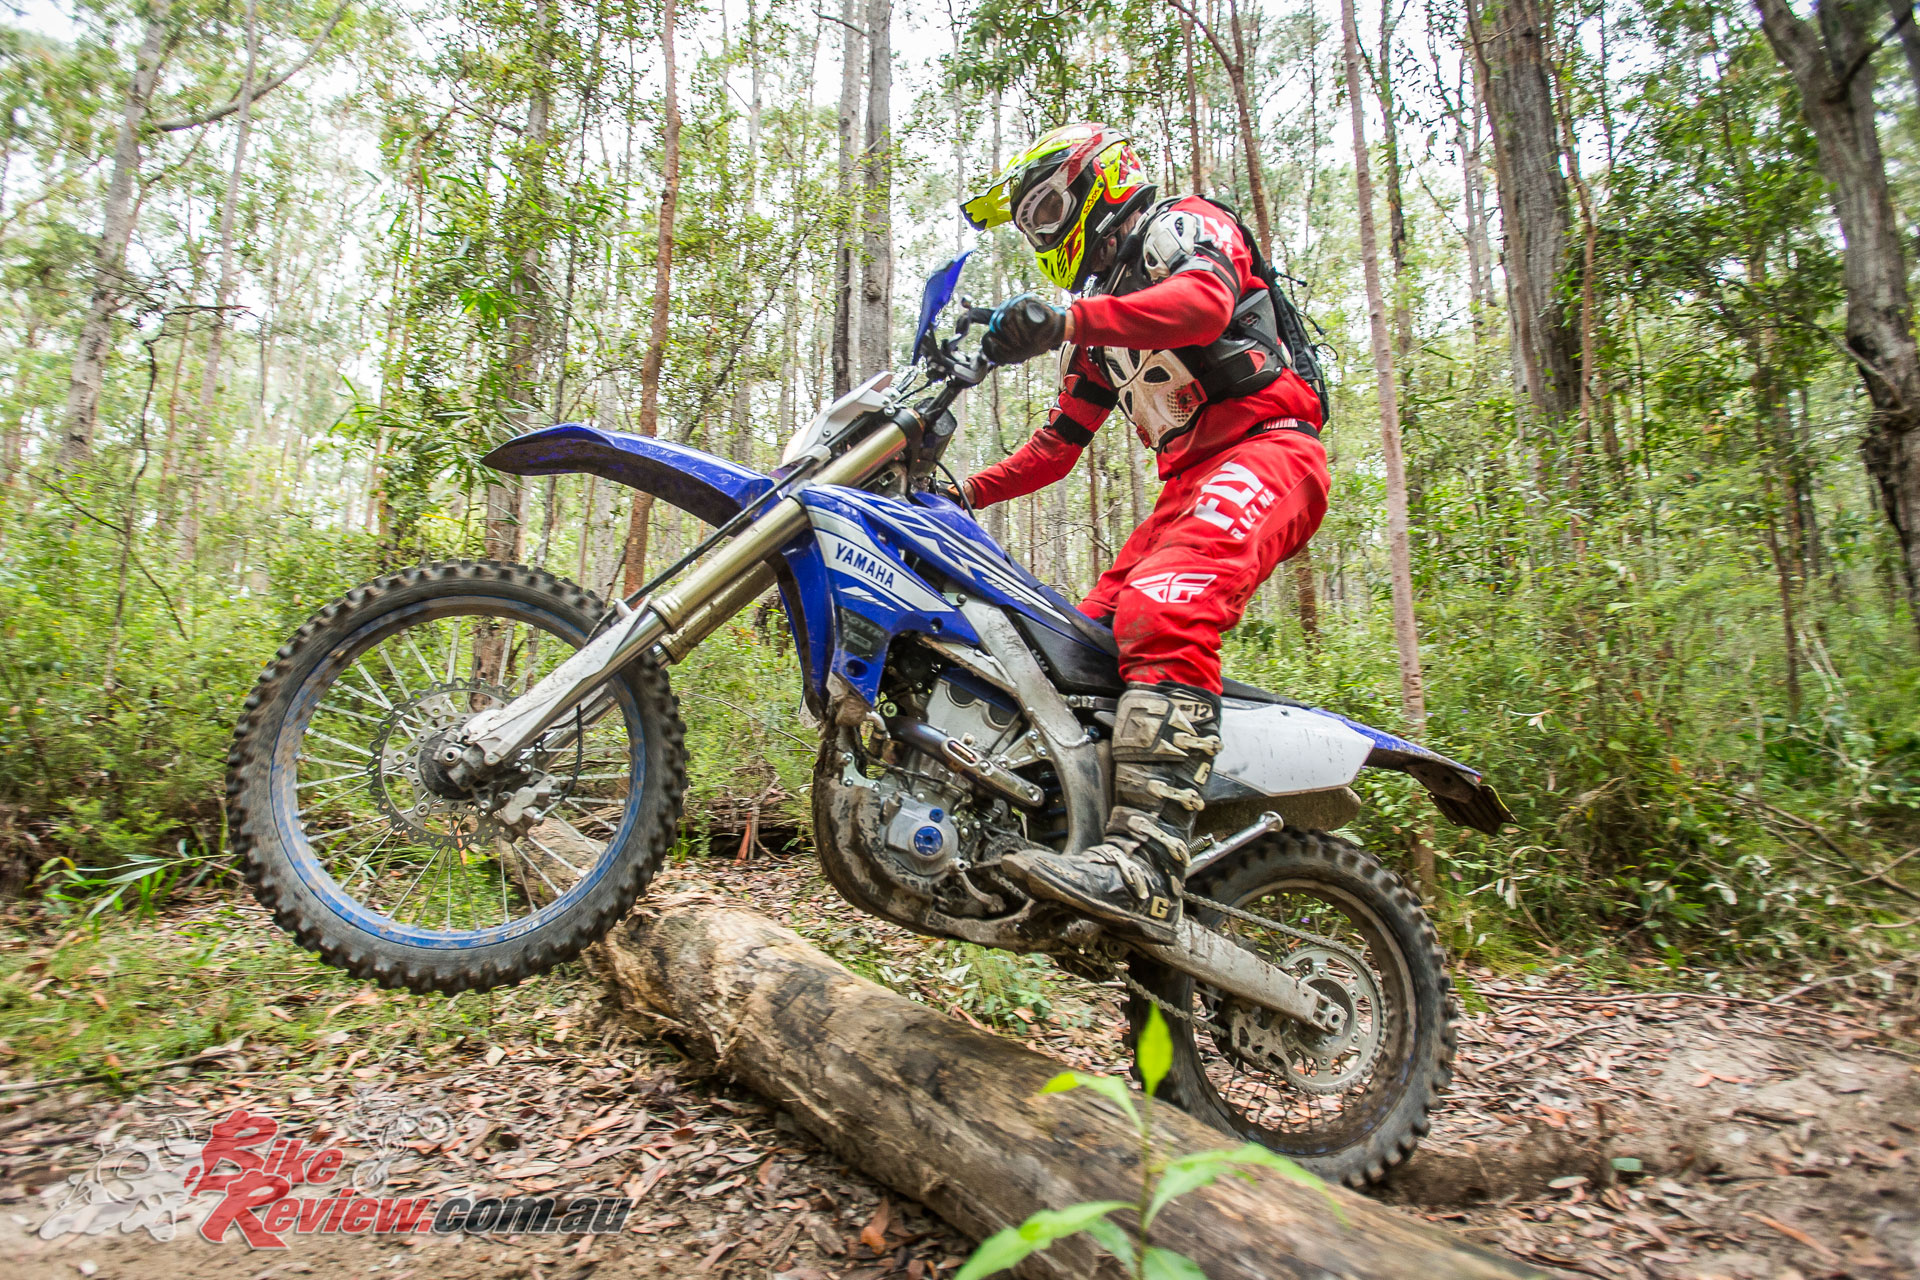 2019 Yamaha WR450F - Testing in the bush conditions on a 200km loop, despite the power and torque and revvy nature with light flywheel, the WR450F was not tiring to ride on a long tough day...